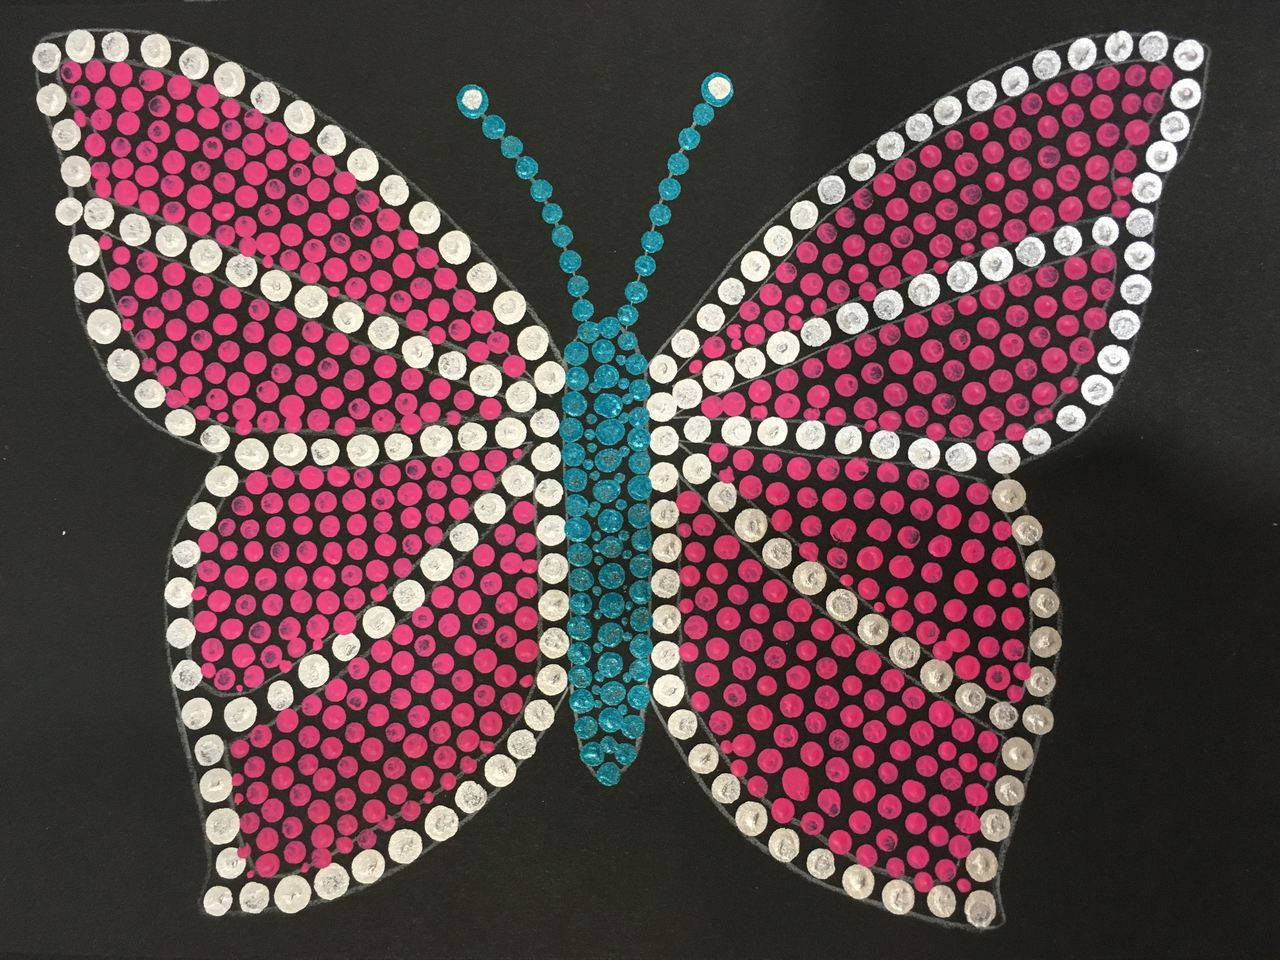 Dot Art Painting of a Butterfly